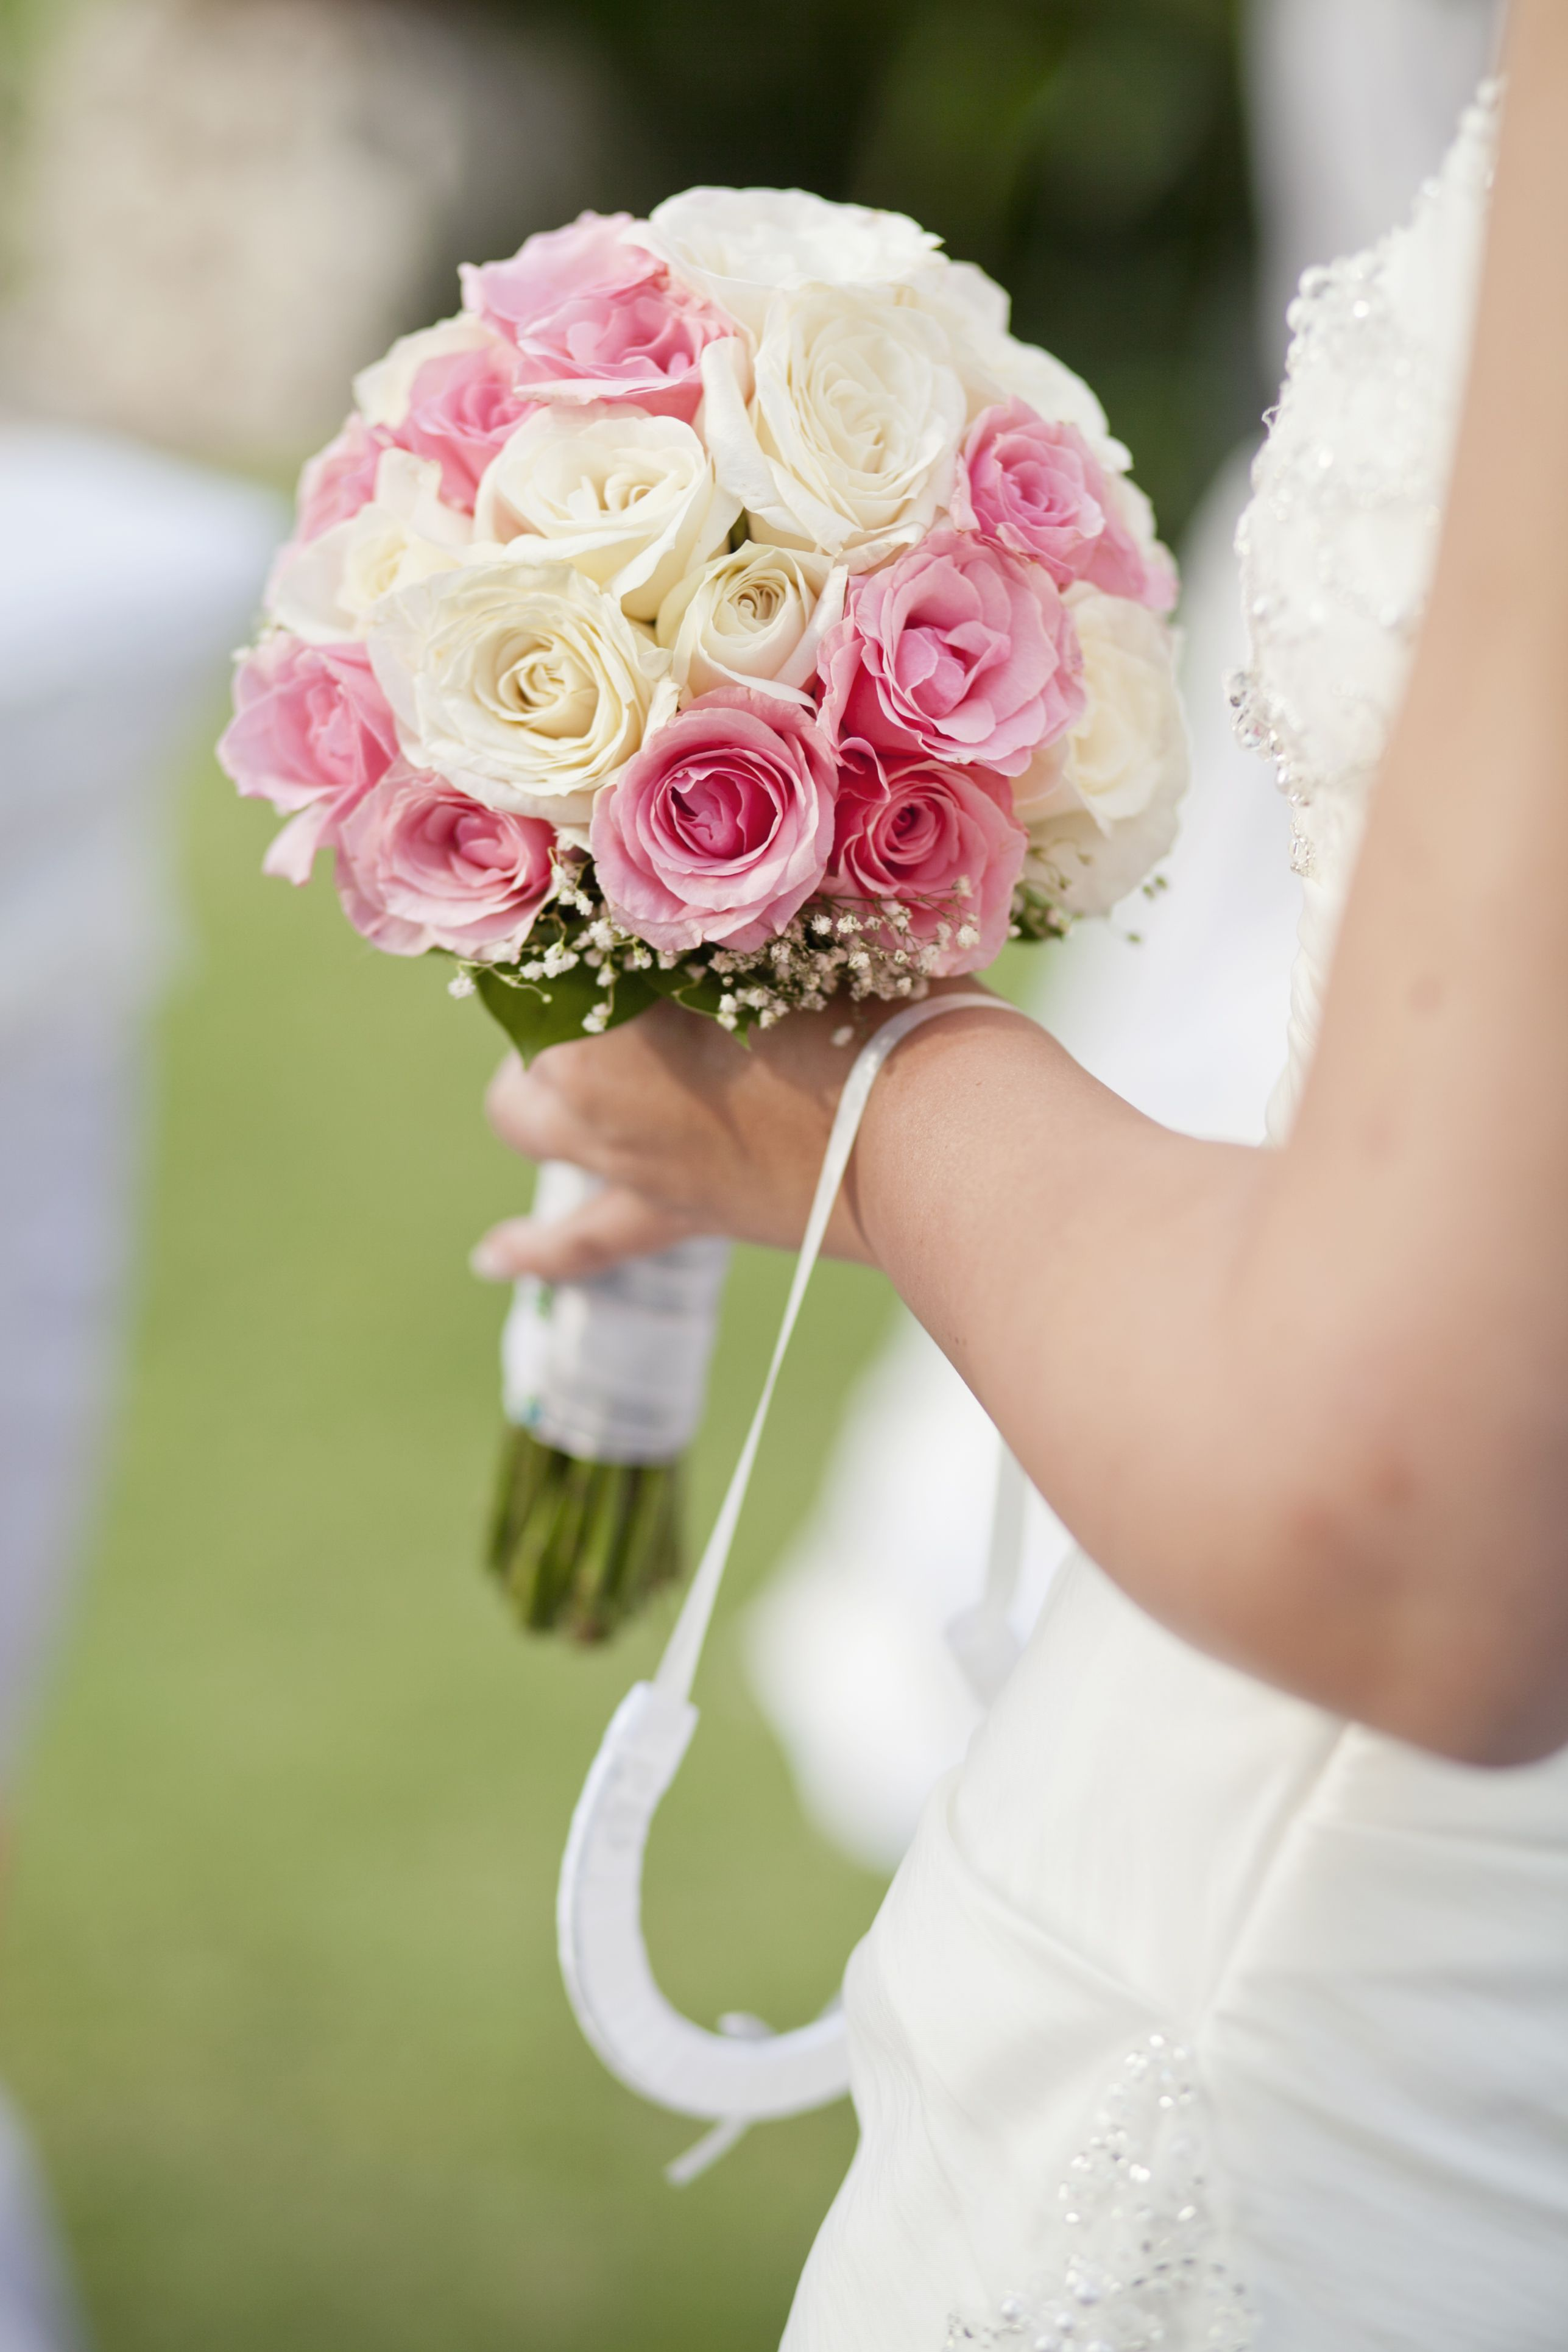 Bespoke bridal bouquet to make your special day more special.